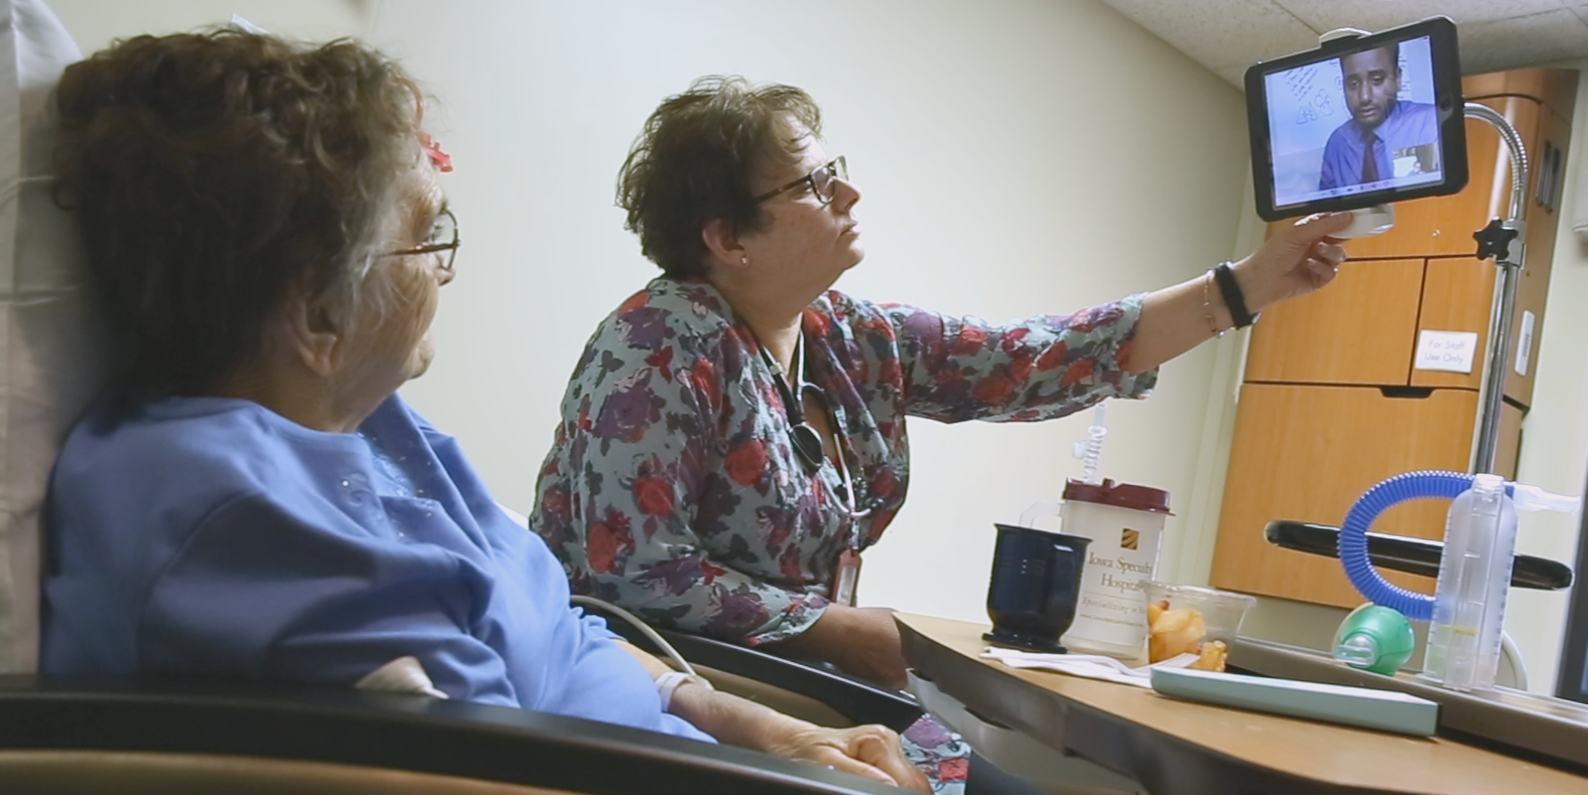 Patient visiting with onsite provider and virtual hospitalist via computer